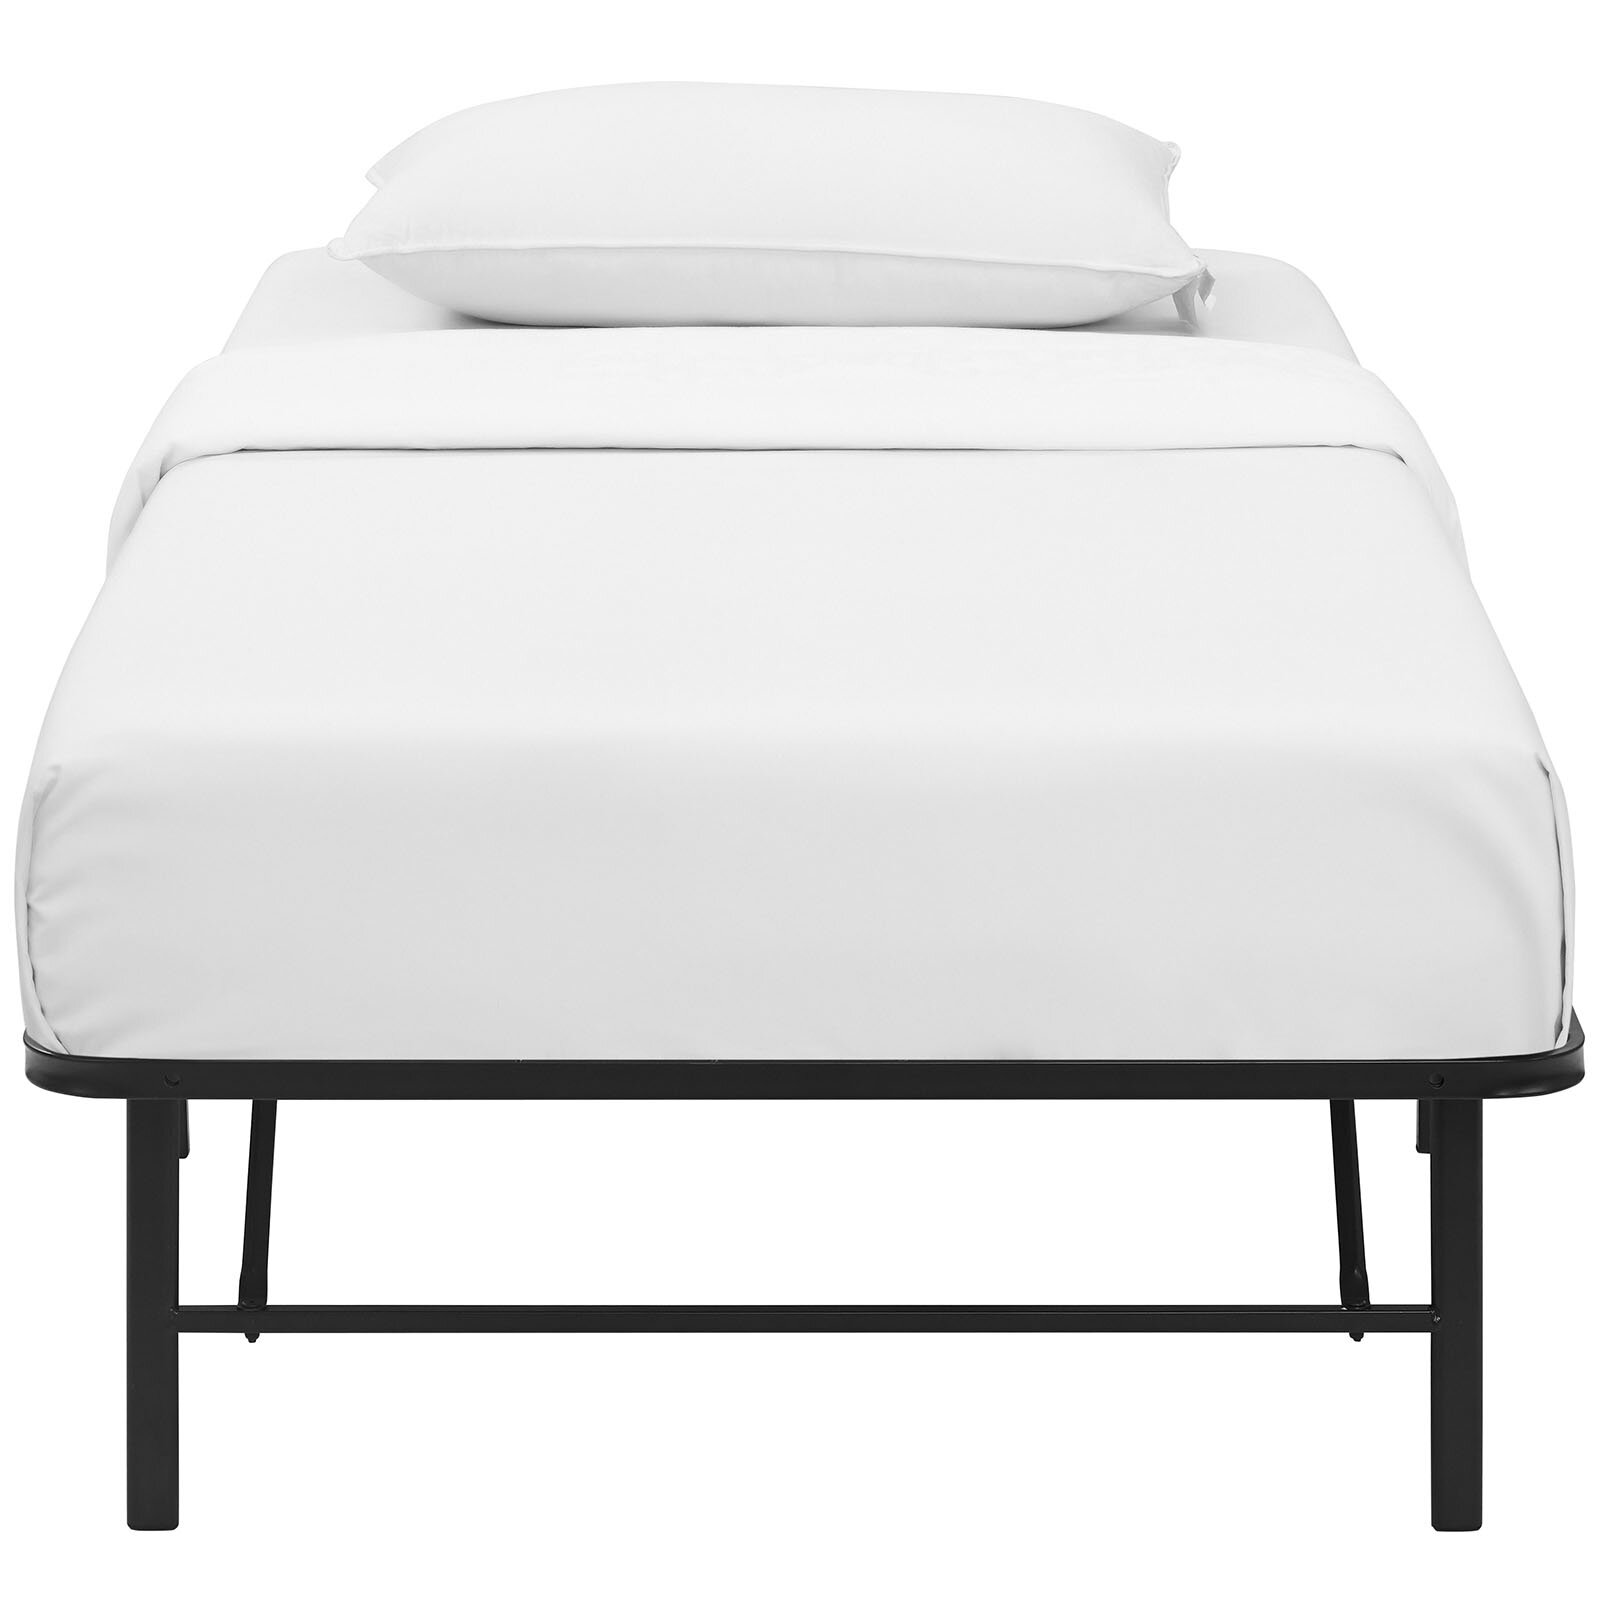 modway horizon steel bed frame